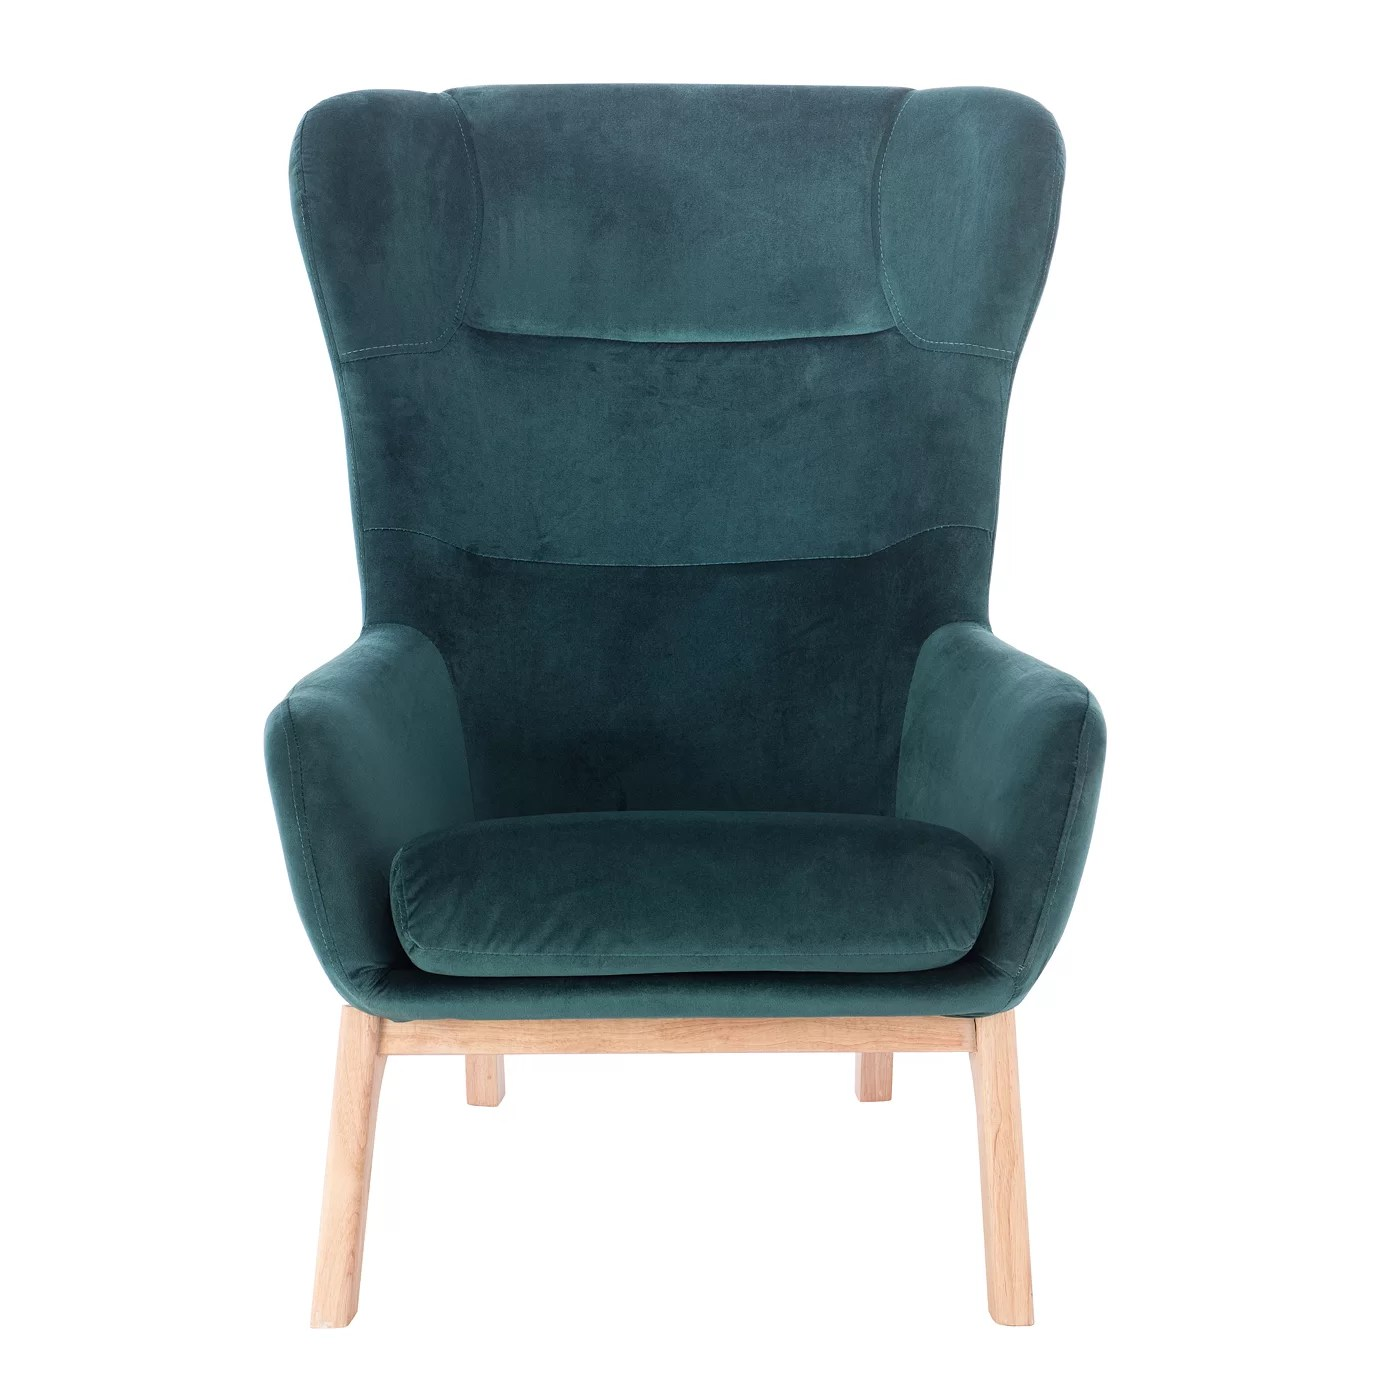 Teal Wingback Chair Eslov Wingback Chair